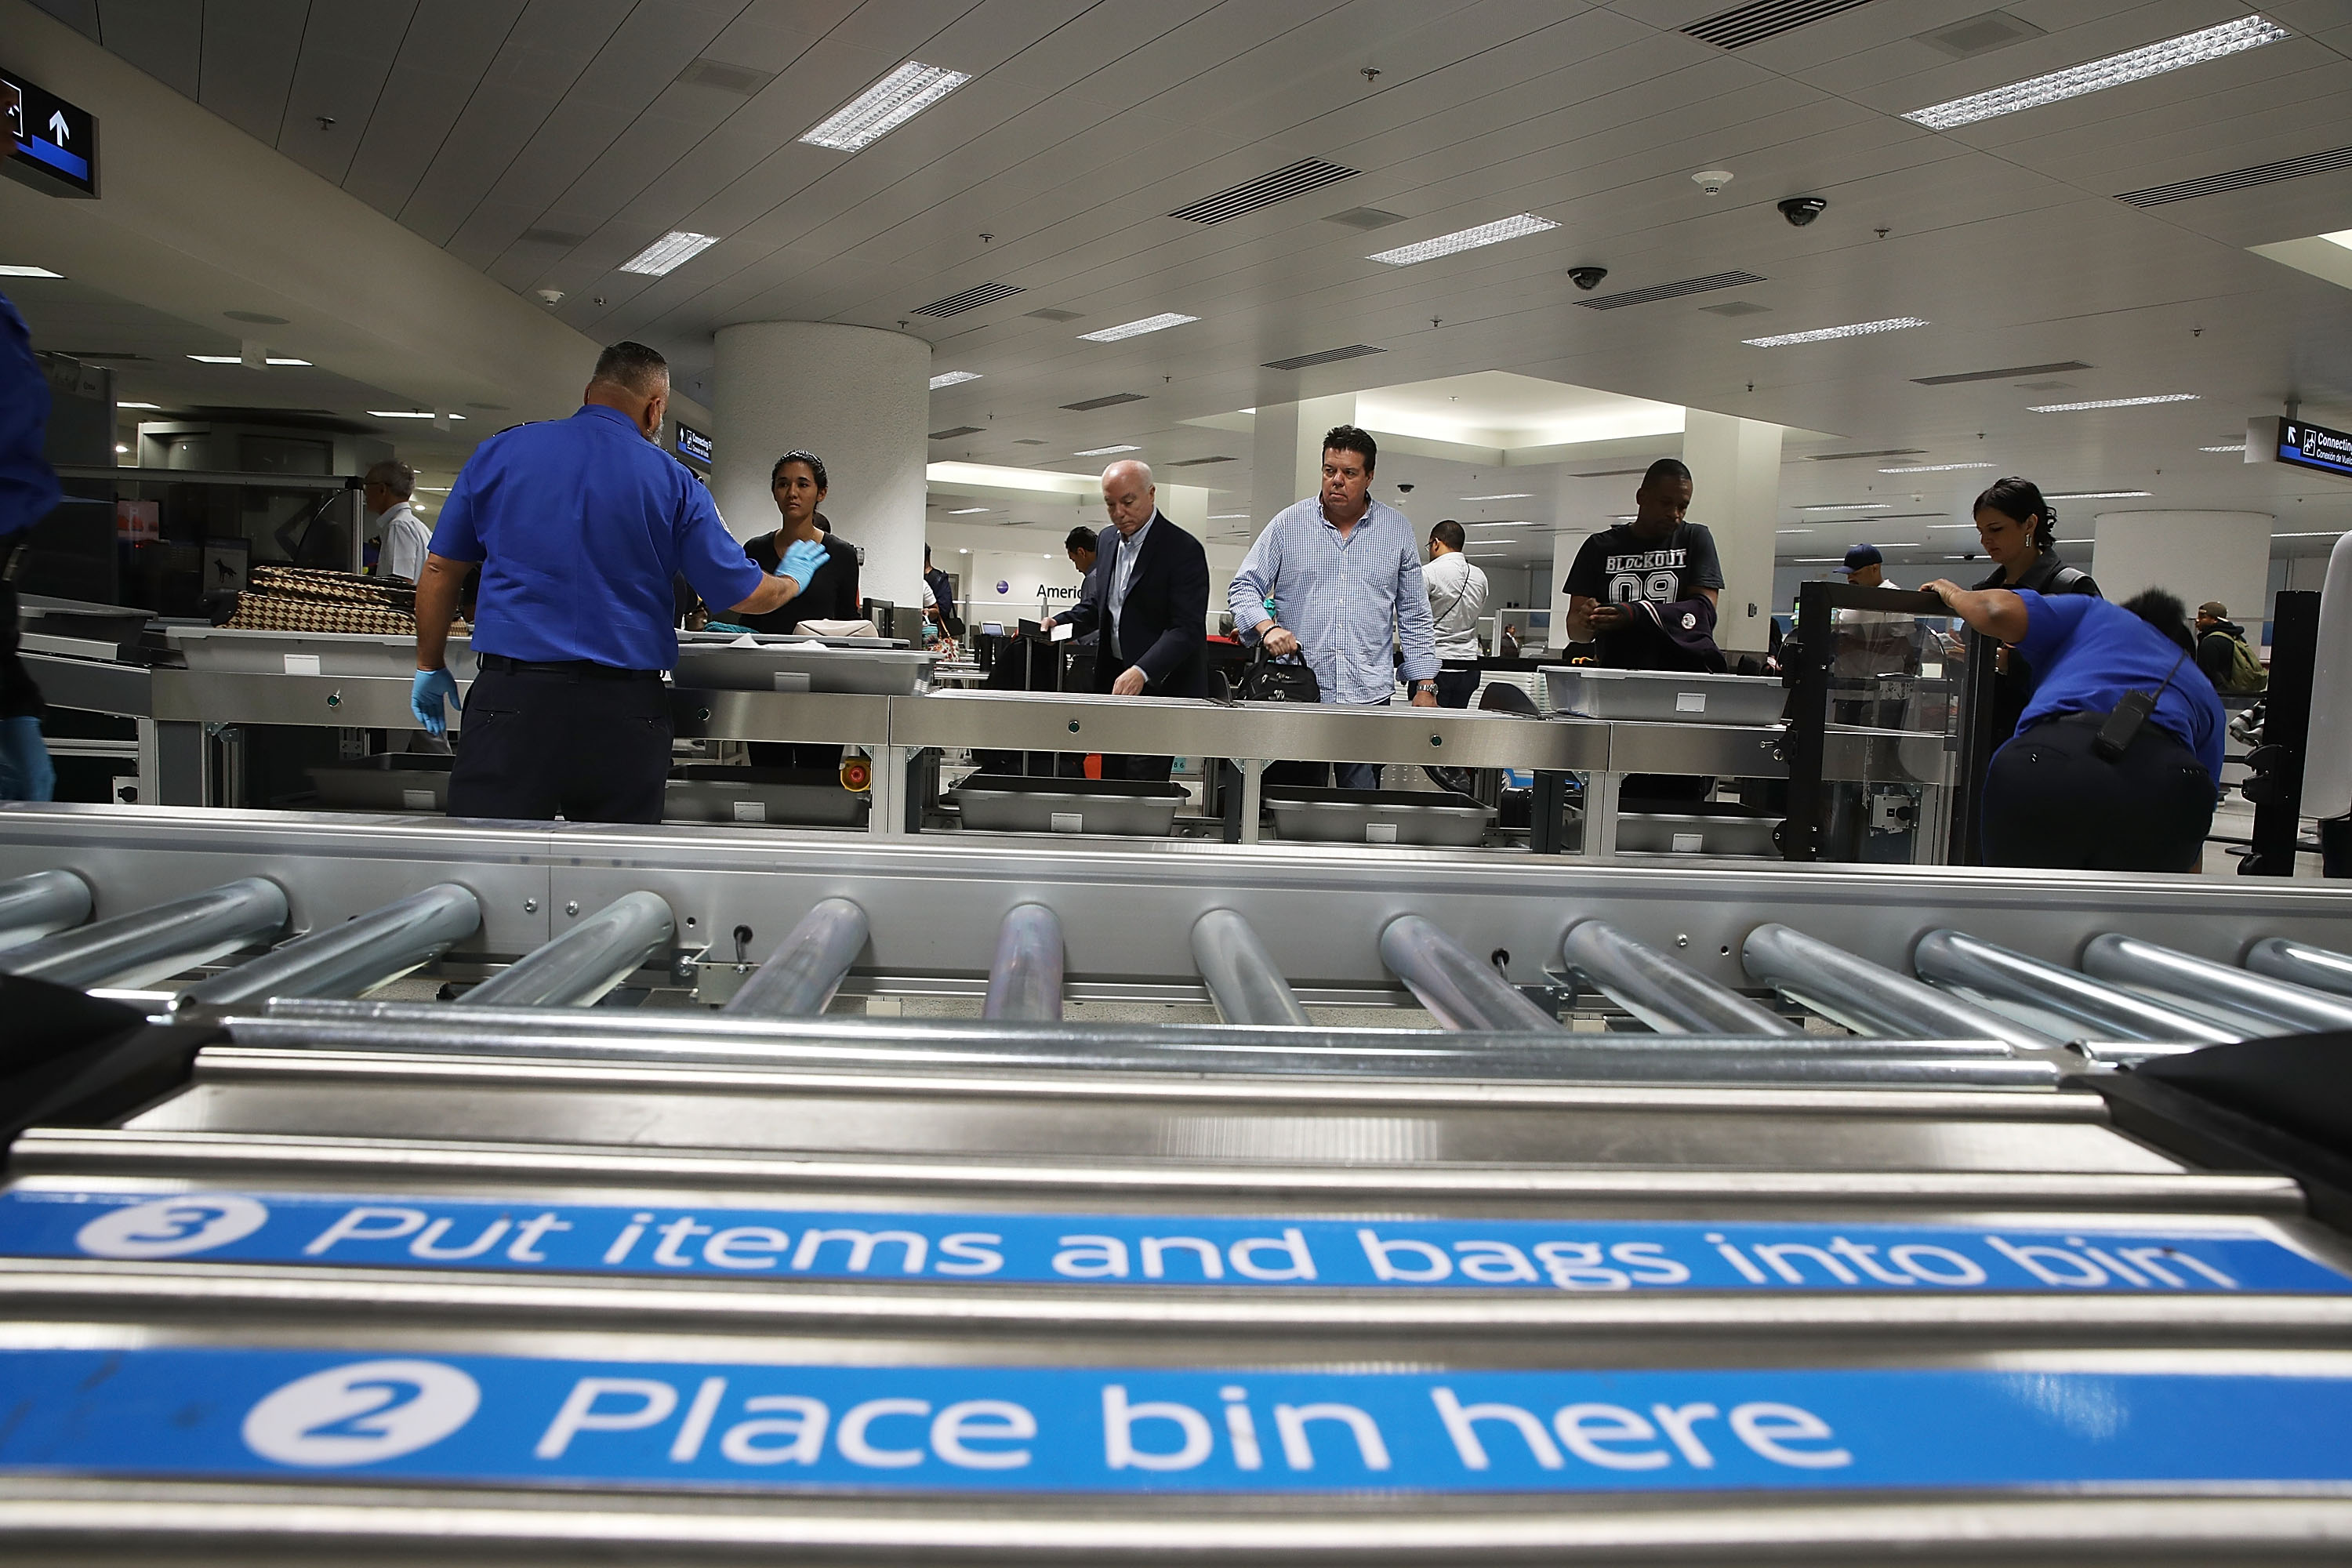 Travelers pass through Transportation Security Administration screening at Miami International Airport in October.